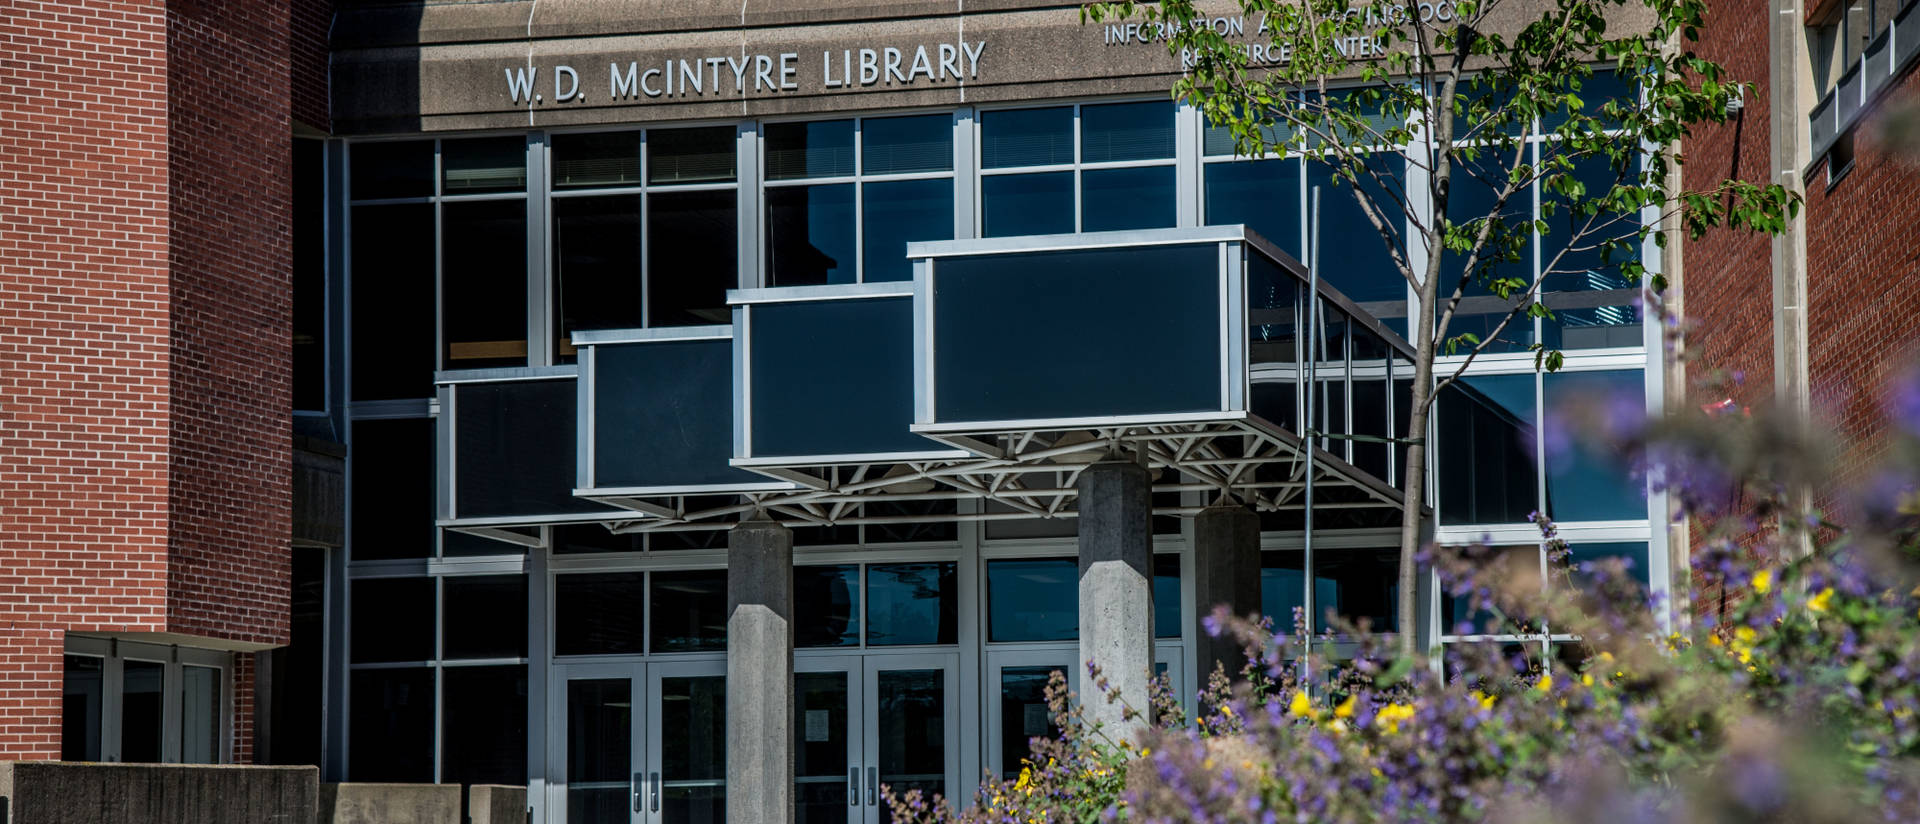 Main entrance to McIntyre Library on the UW-Eau Claire campus.